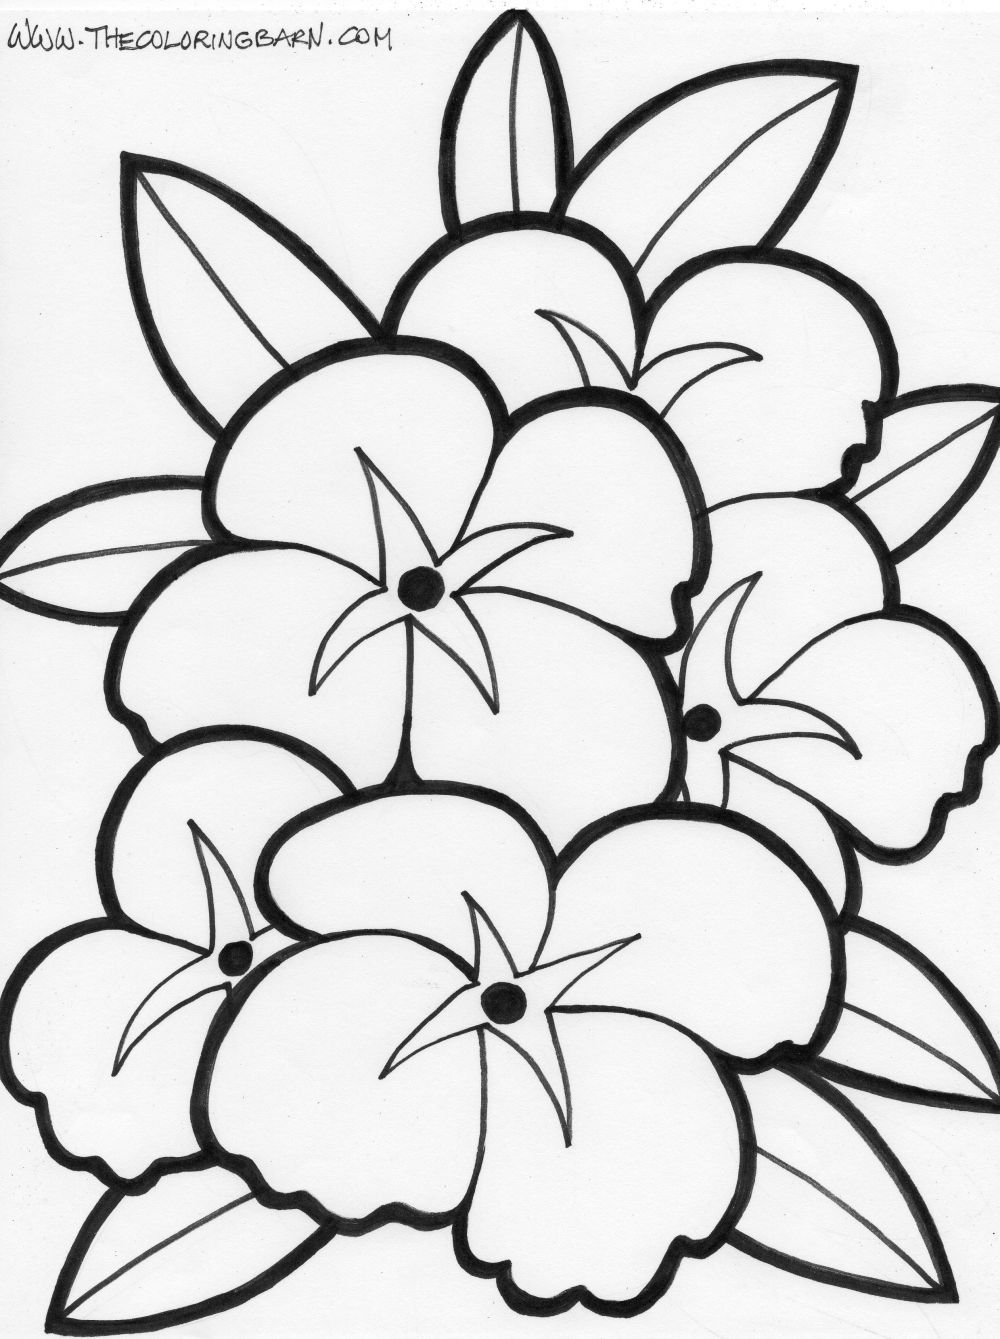 free printable coloring pages google search - Printable Drawings